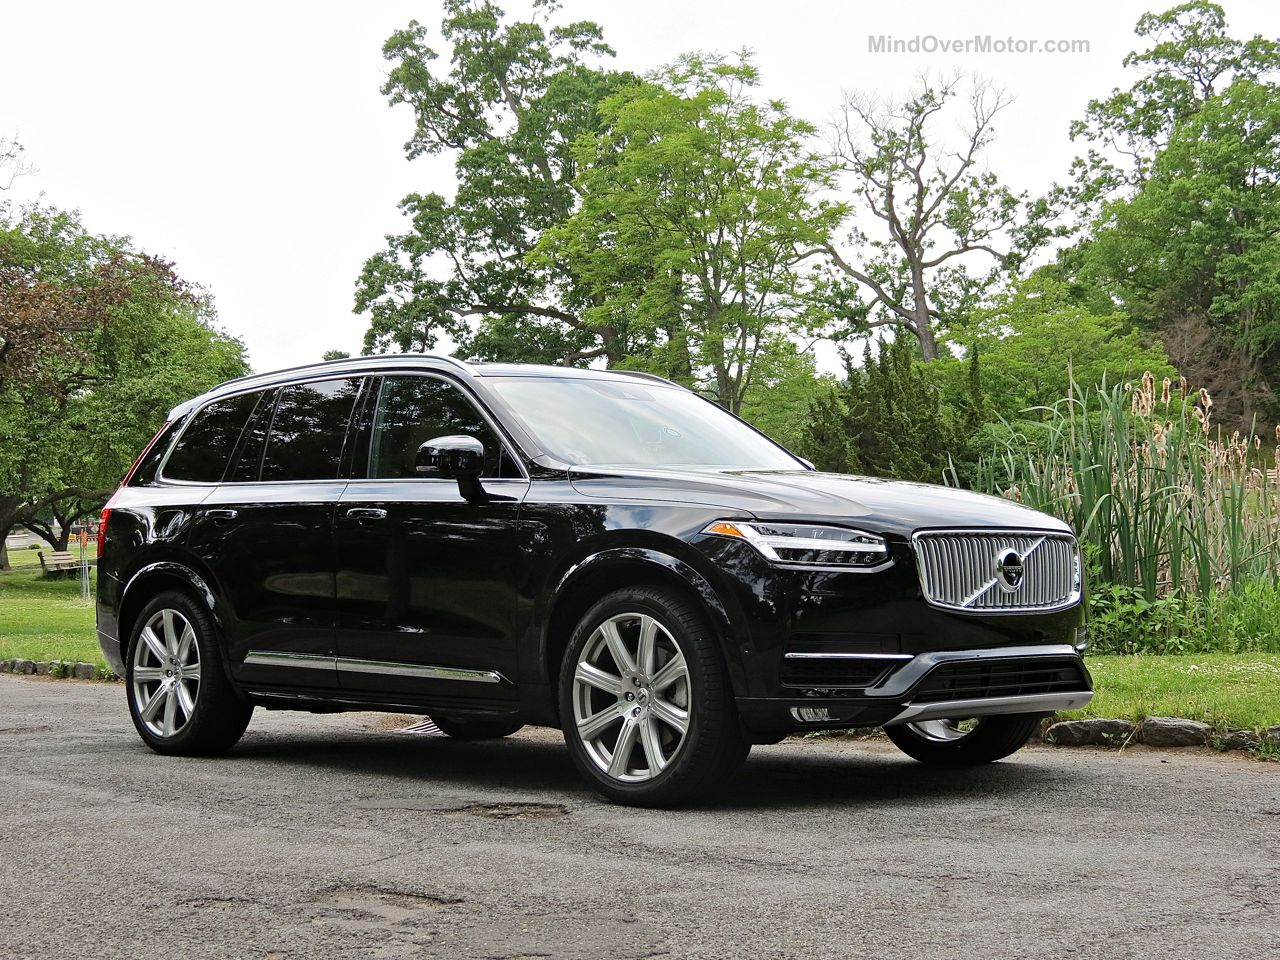 2016 volvo xc90 review tell the world you ve made babies in style mind over motor. Black Bedroom Furniture Sets. Home Design Ideas